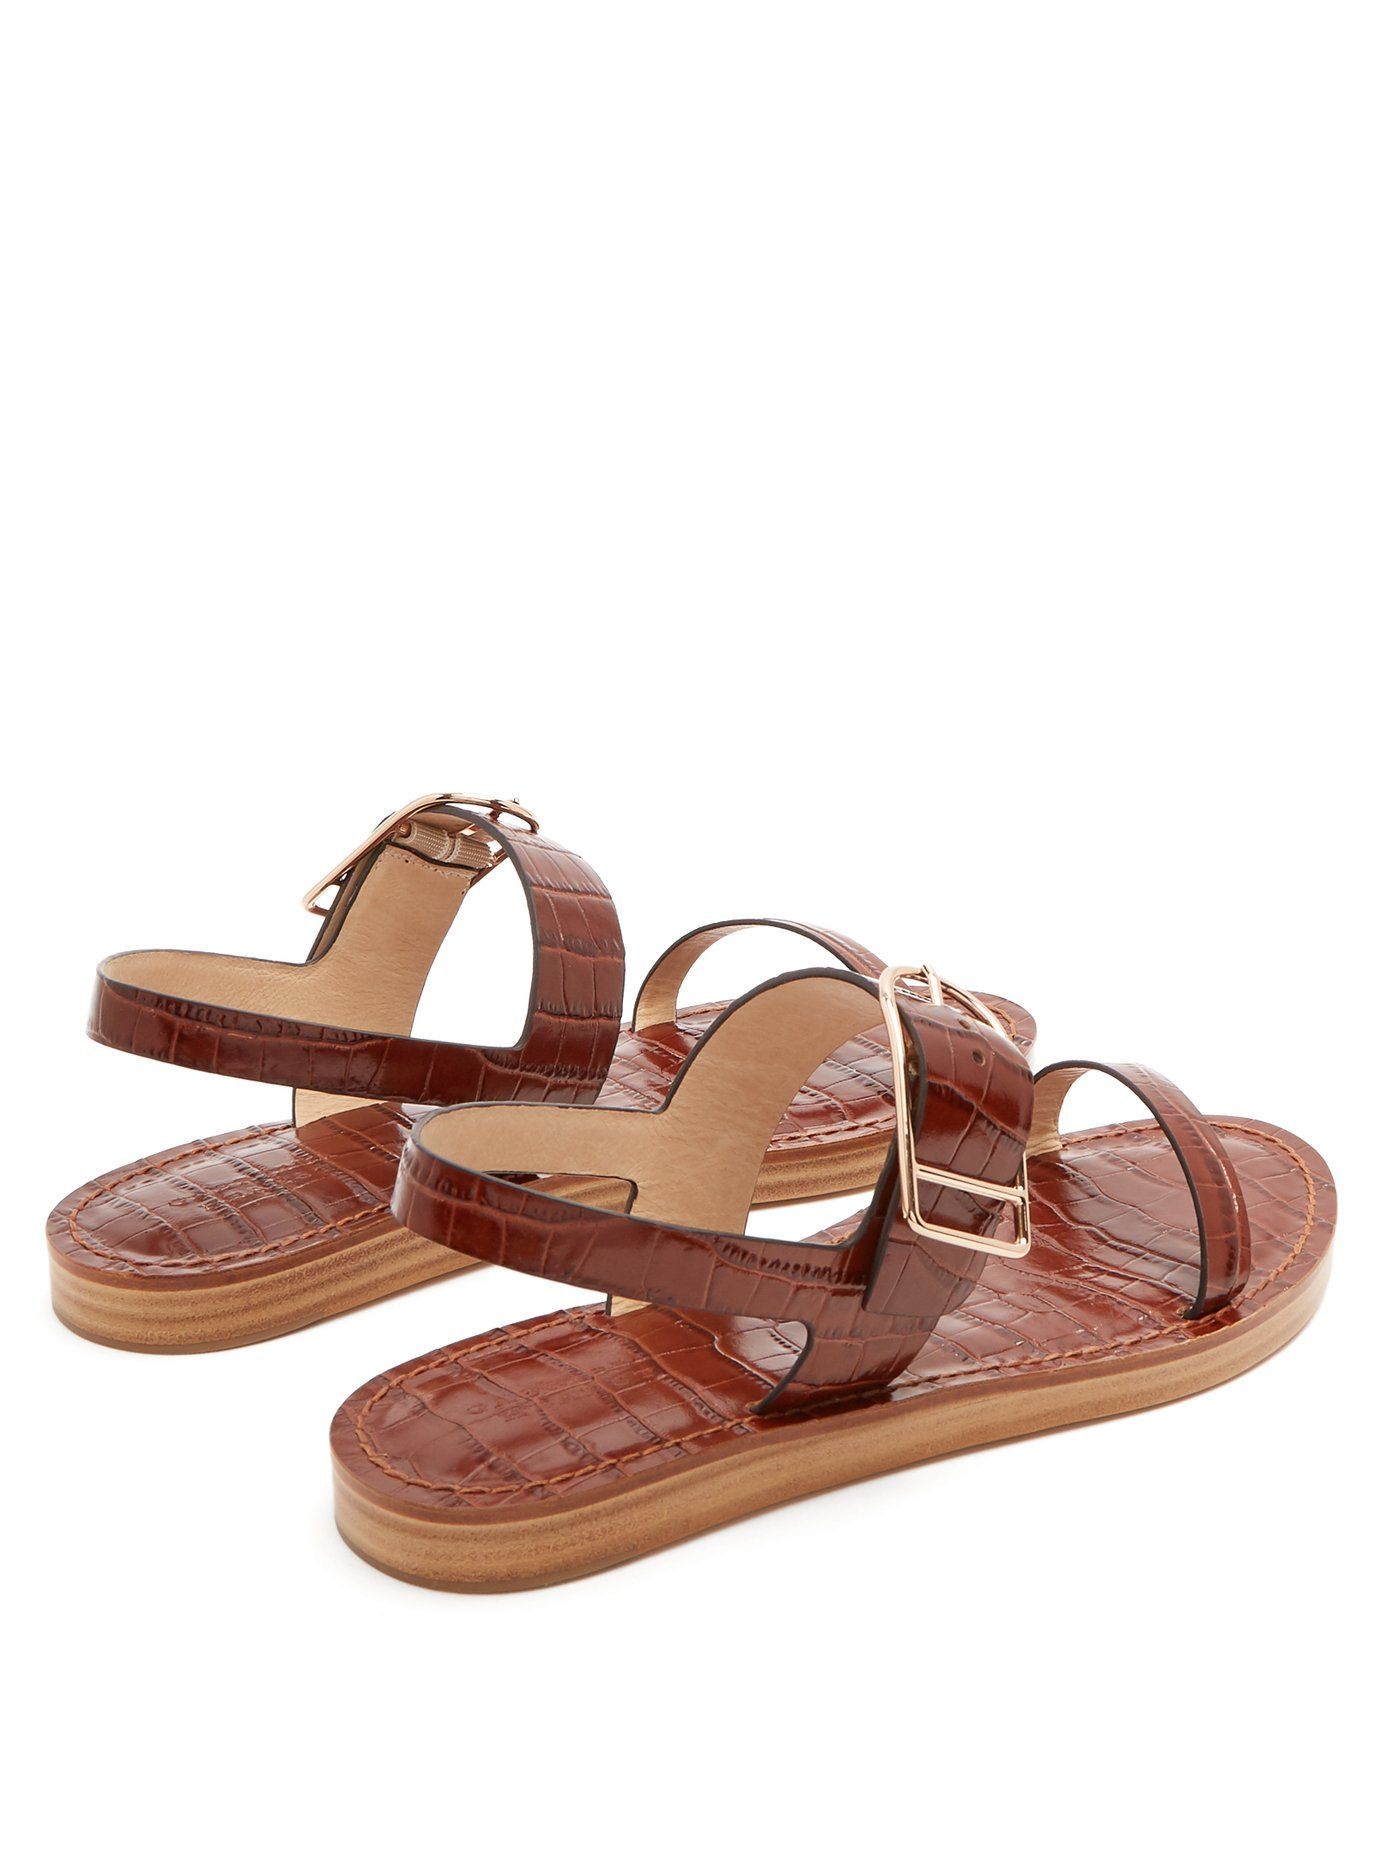 Dunhill leather sandals Gabriela Hearst New Cheap Online Sale Fake 2018 Newest Cheap Price Free Shipping Eastbay nl4fNuS